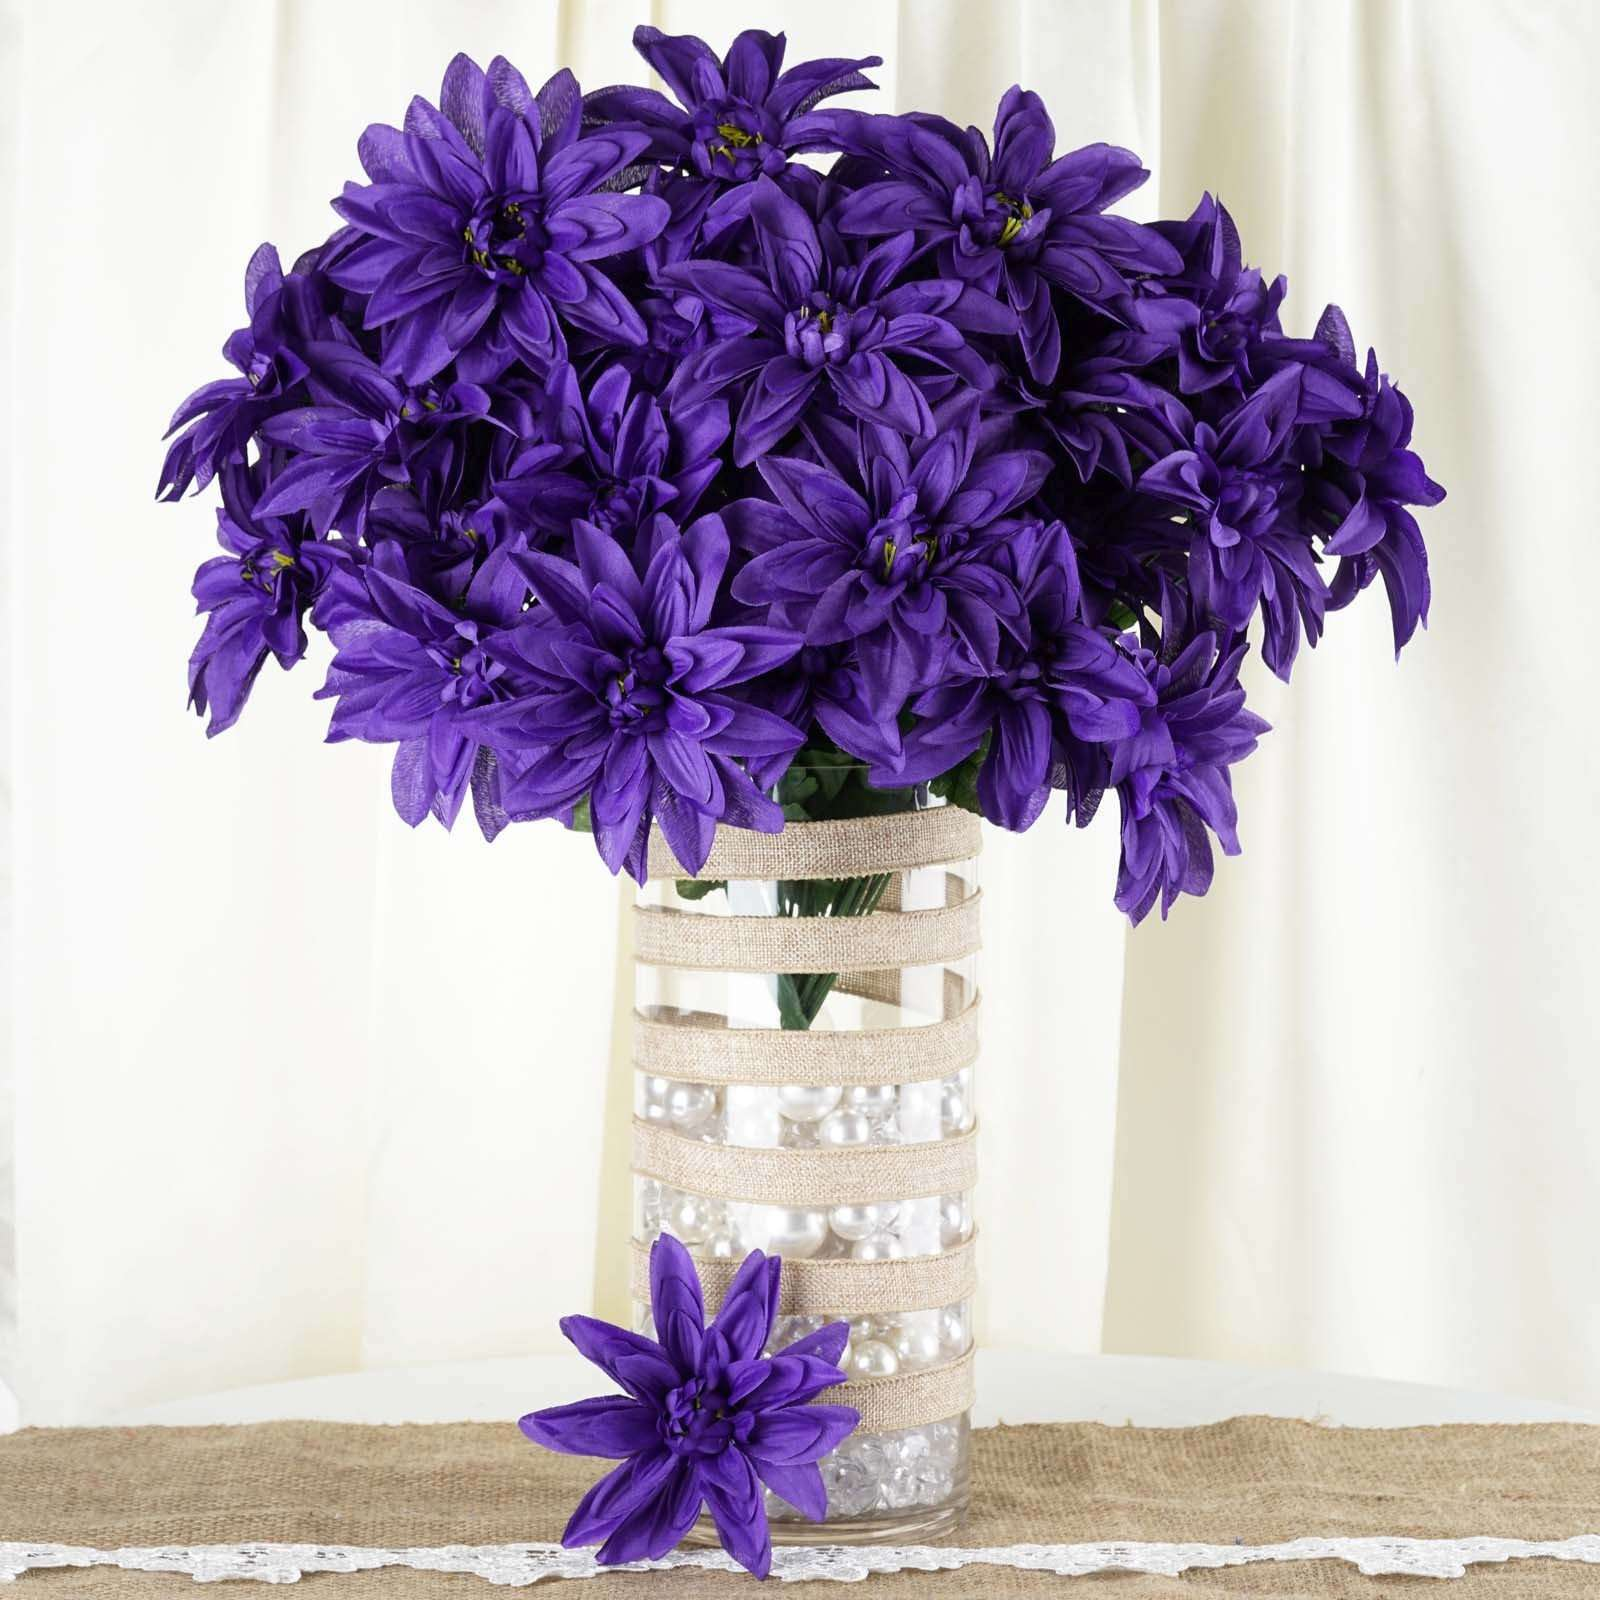 4 Bush 56 Pcs Purple Artificial Silk Dahlia Flower Bushes Wedding